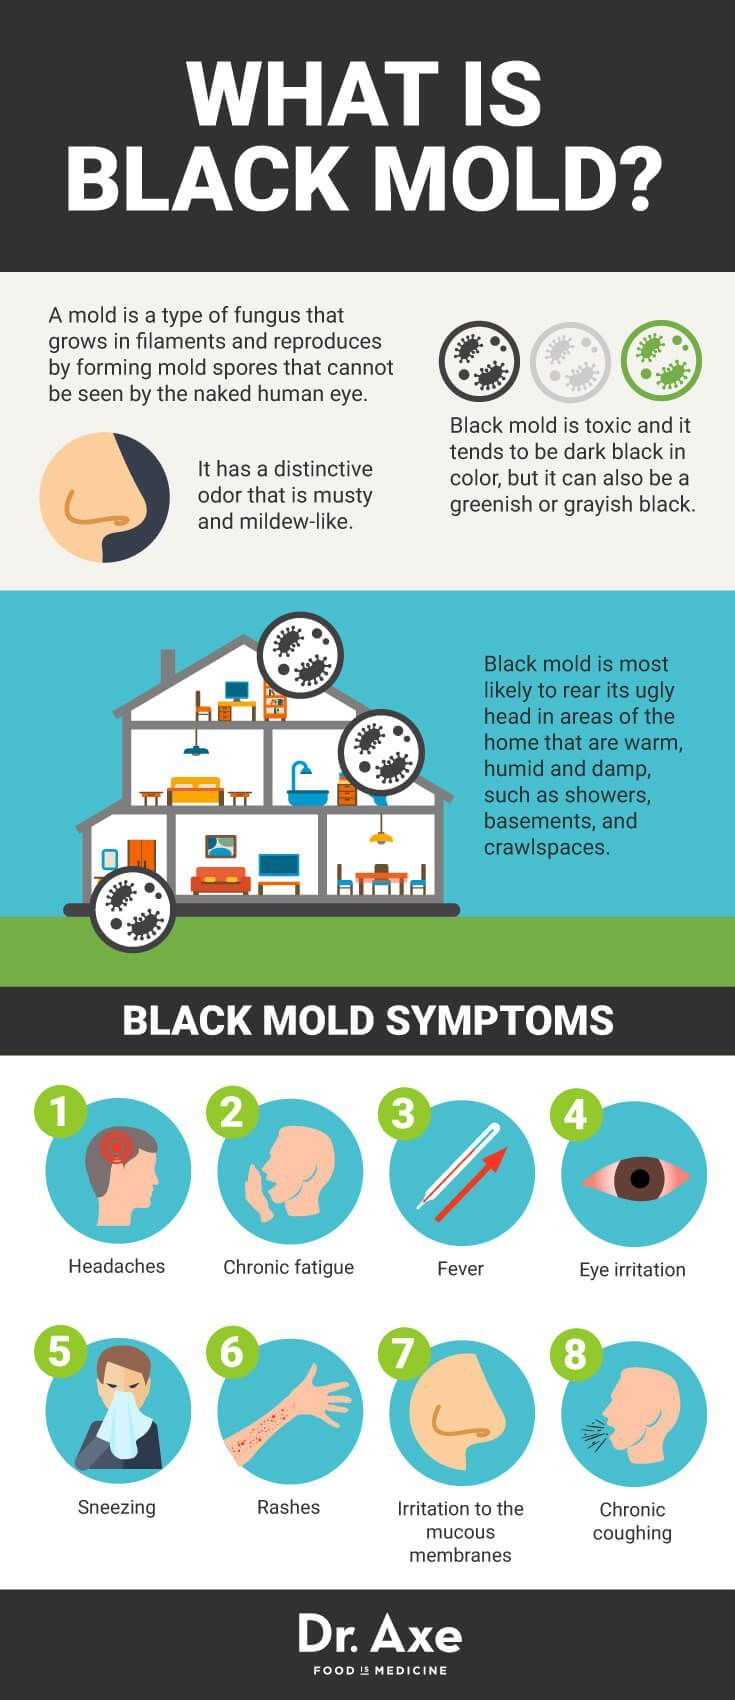 Black mold exposure and black mold poisoning can cause a wide range of health problems. Some black mold symptoms can actually be really serious.